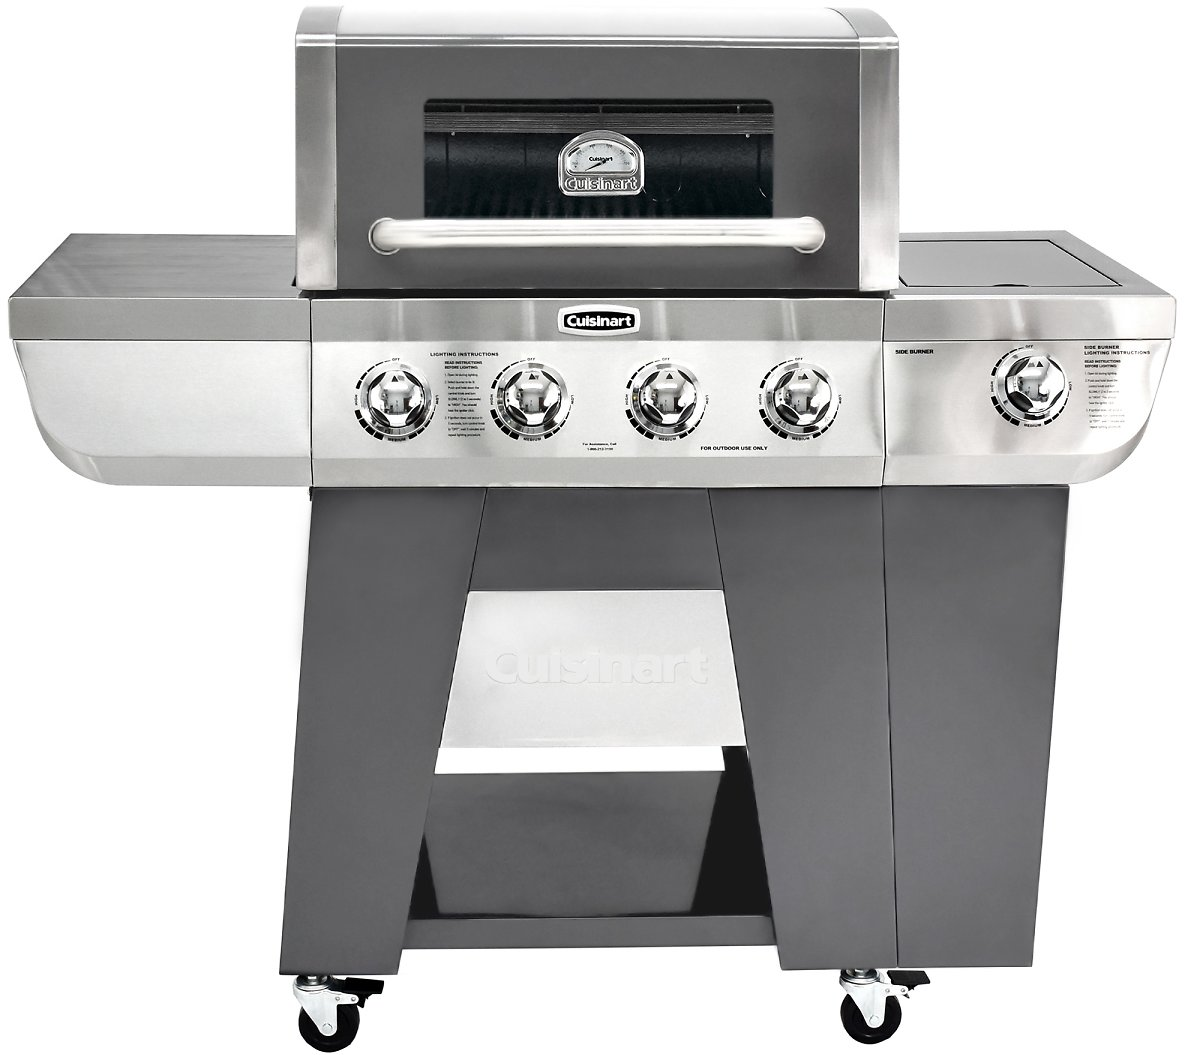 (Ships Free) Cuisinart Deluxe Four-Burner Gas Grill